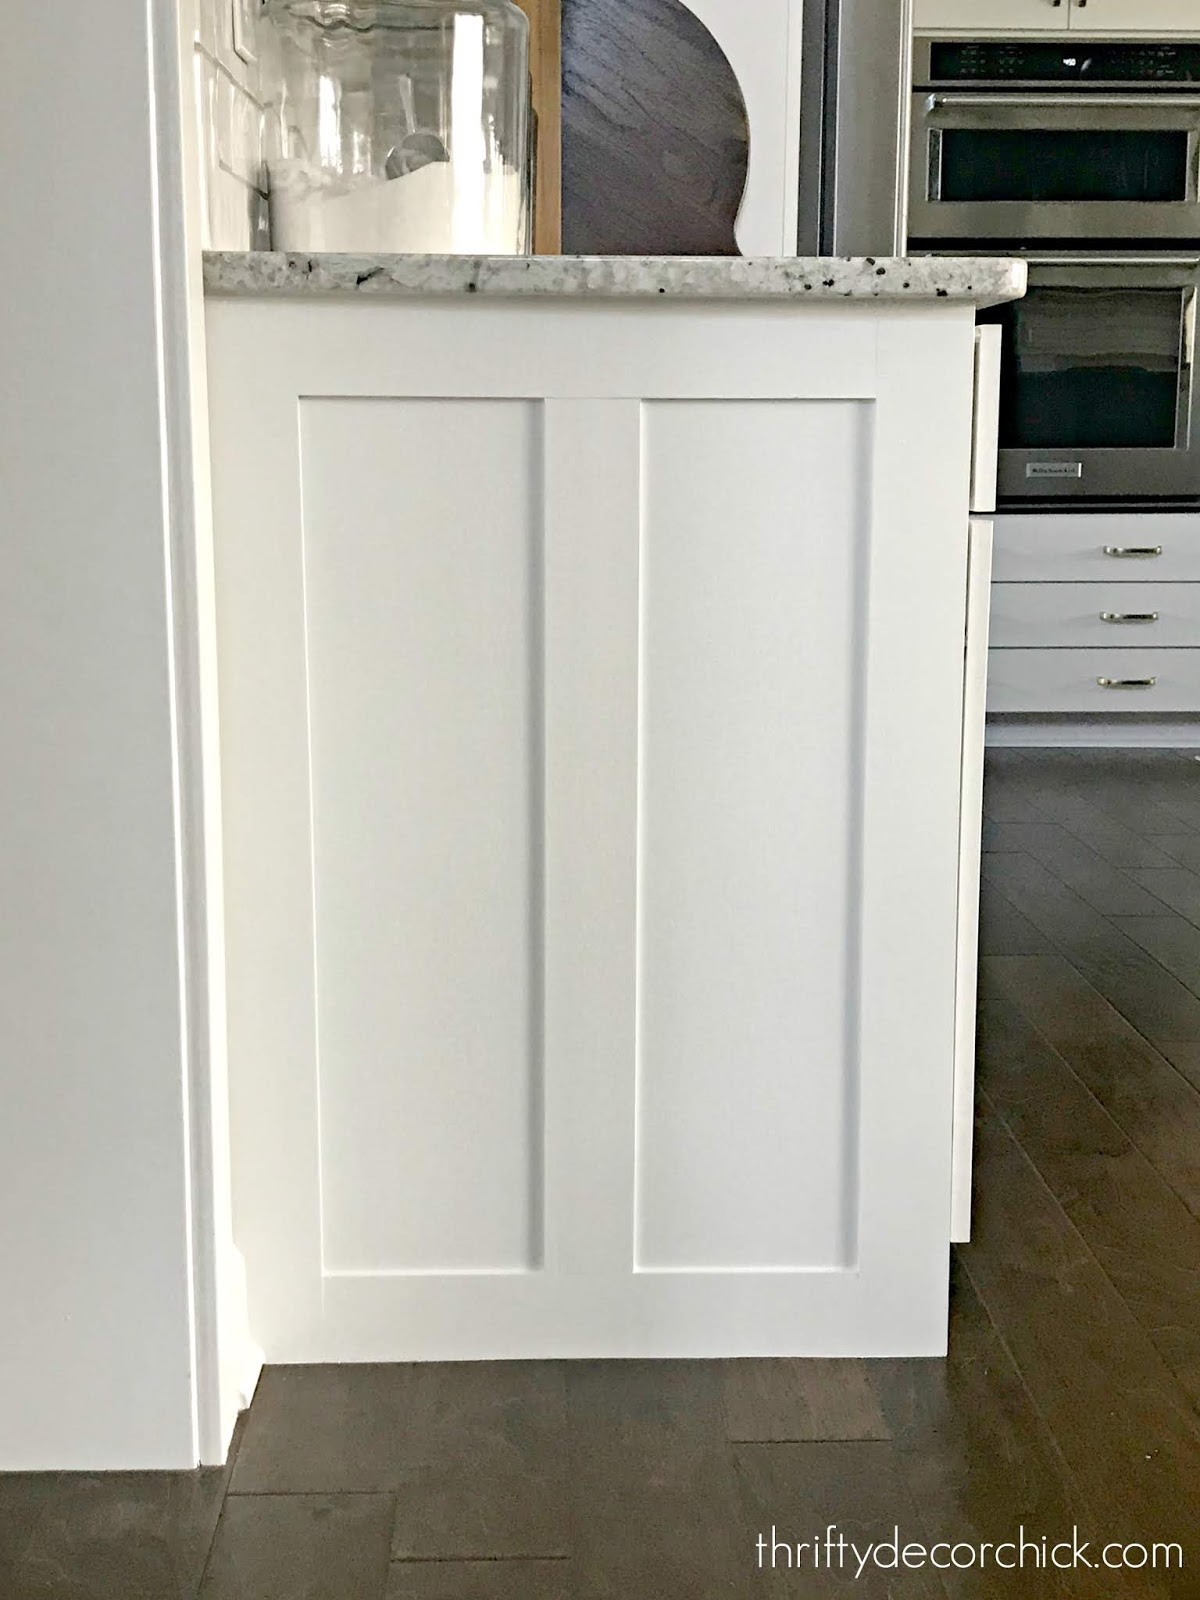 How To Upgrade The End Of Your Builder Grade Cabinets Thrifty Decor Chick